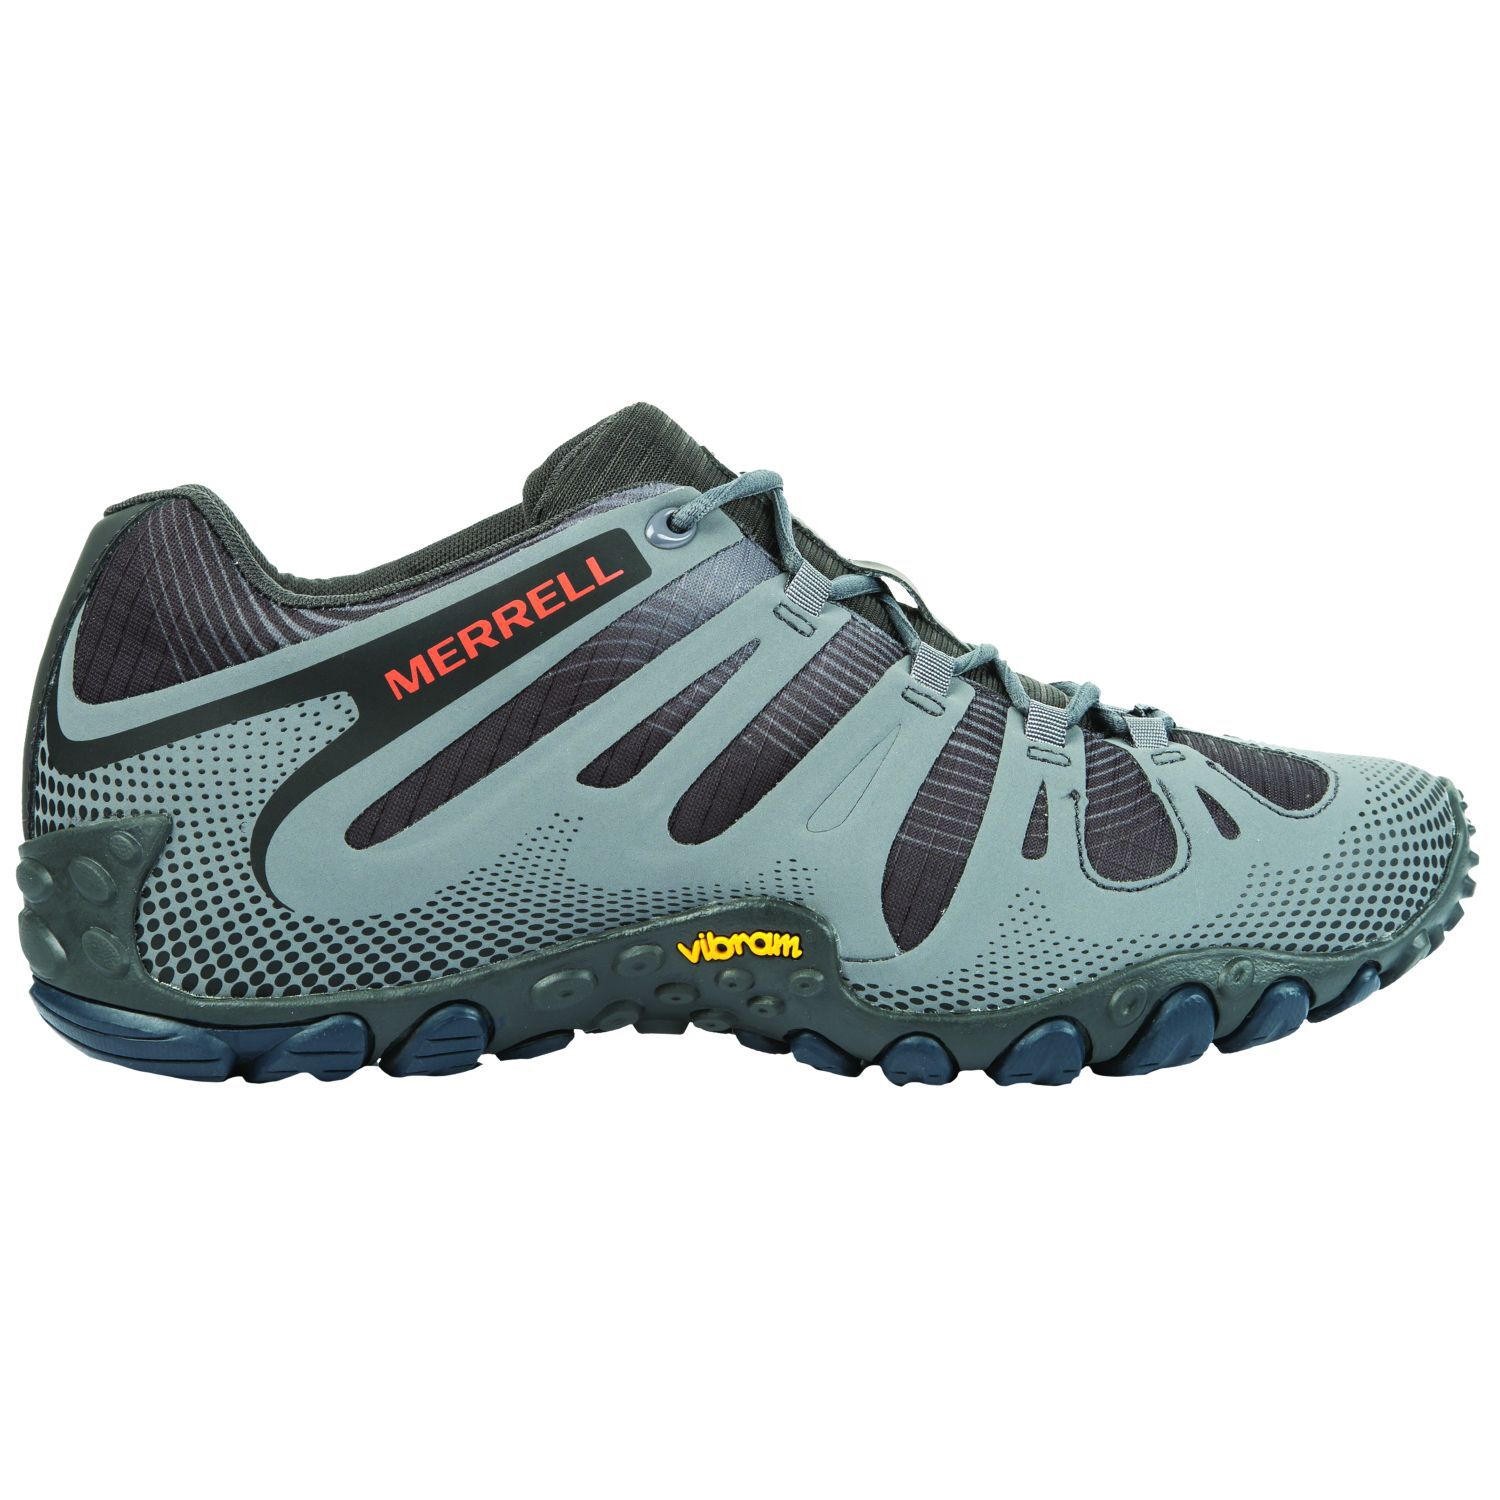 Merrell Shoes, Boots and Footwear